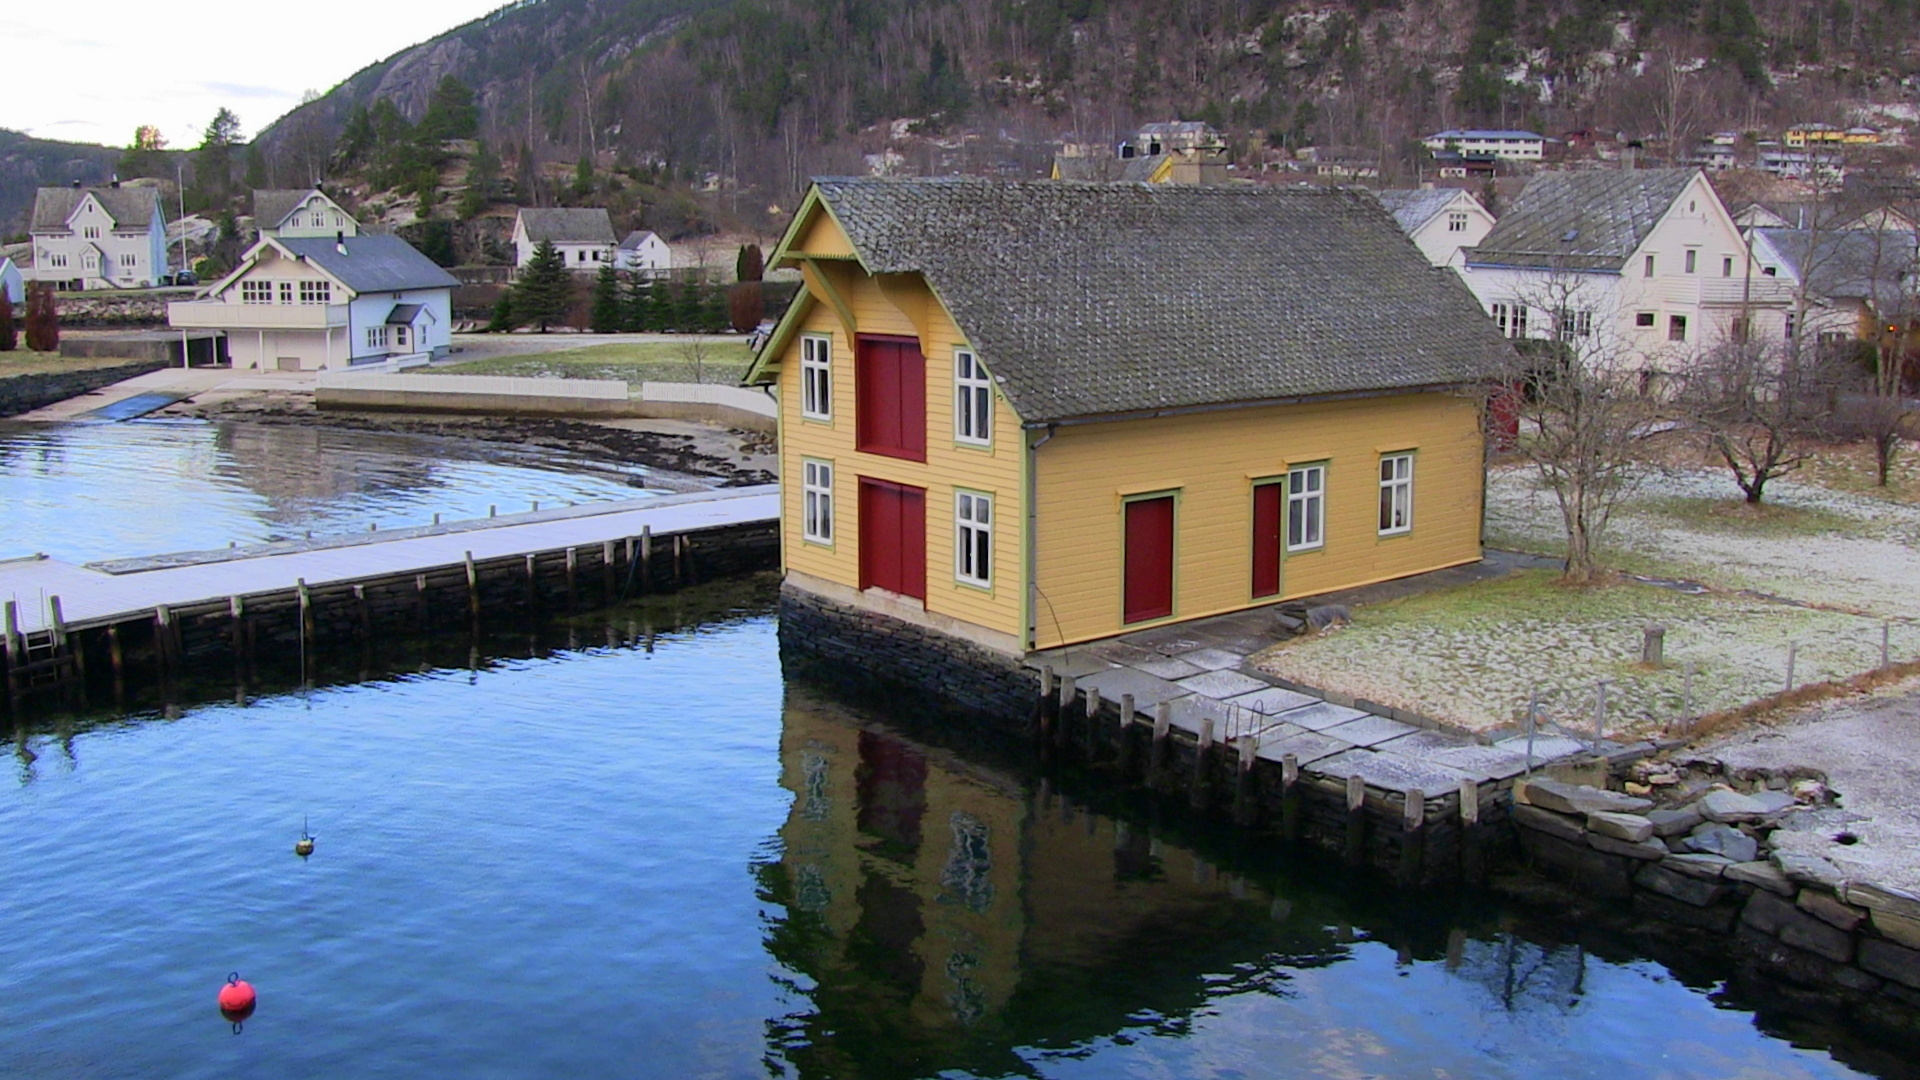 House on the sandy delta of Jondalsøyri, as seen from the ferry - © Anne Gullbjørg Digranes